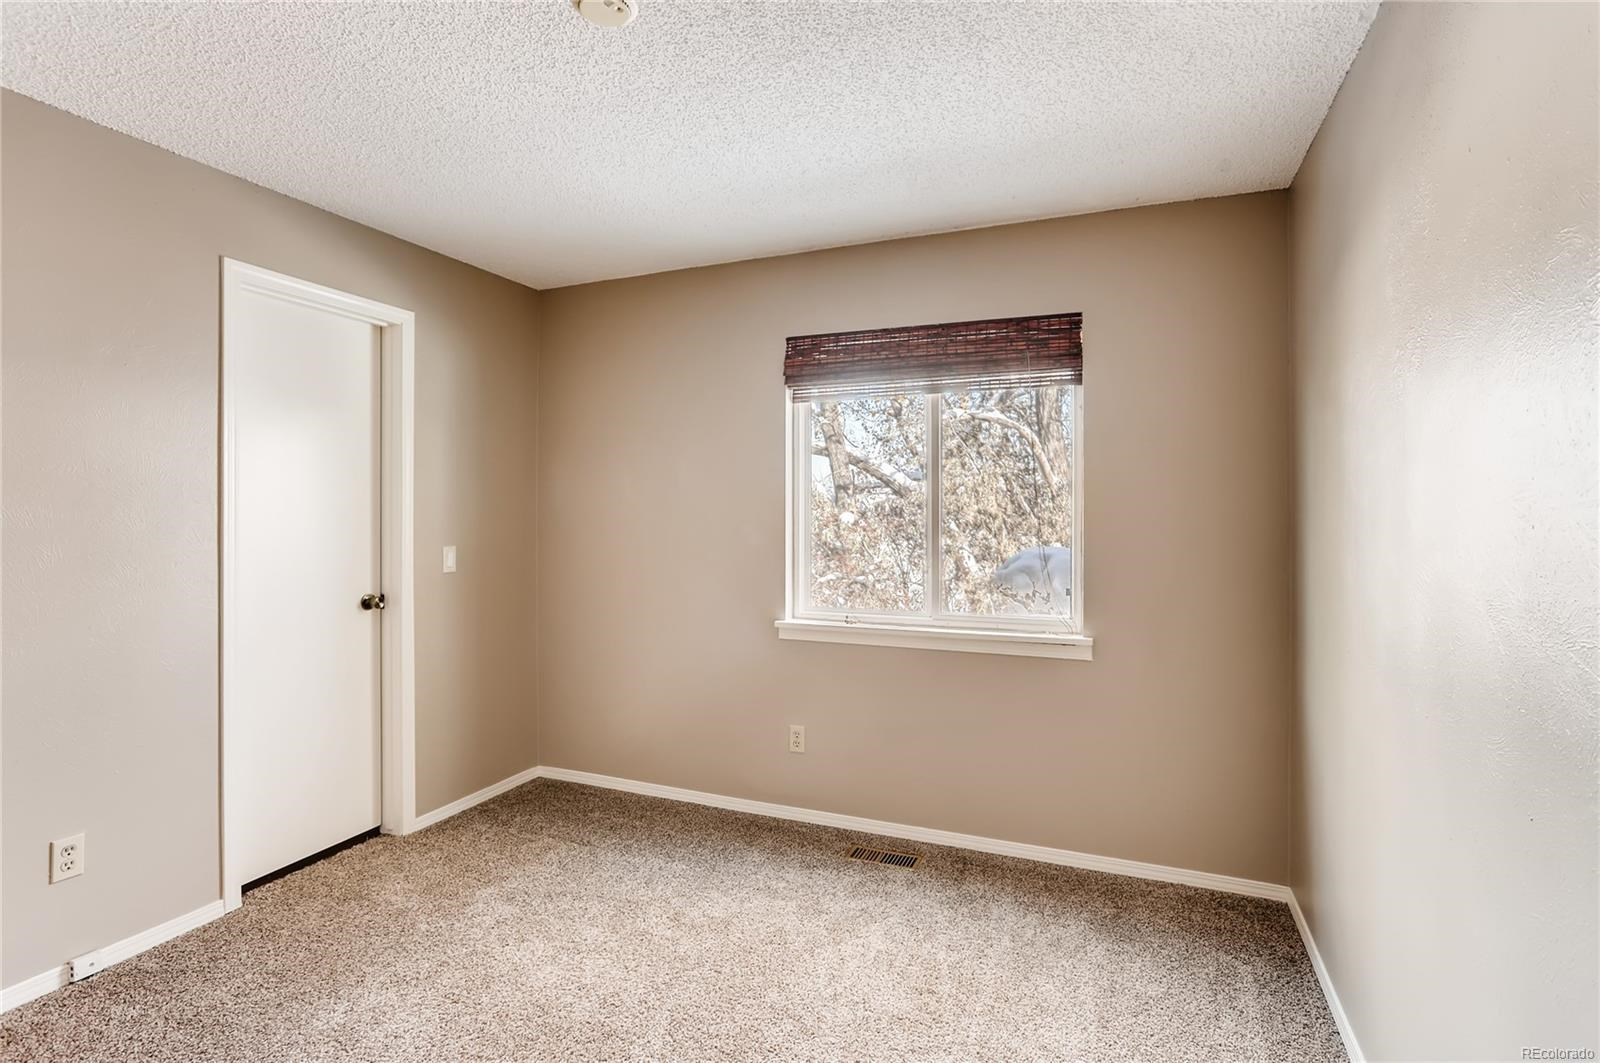 MLS# 5062713 - 10 - 18258 W 58th Place #1, Golden, CO 80403